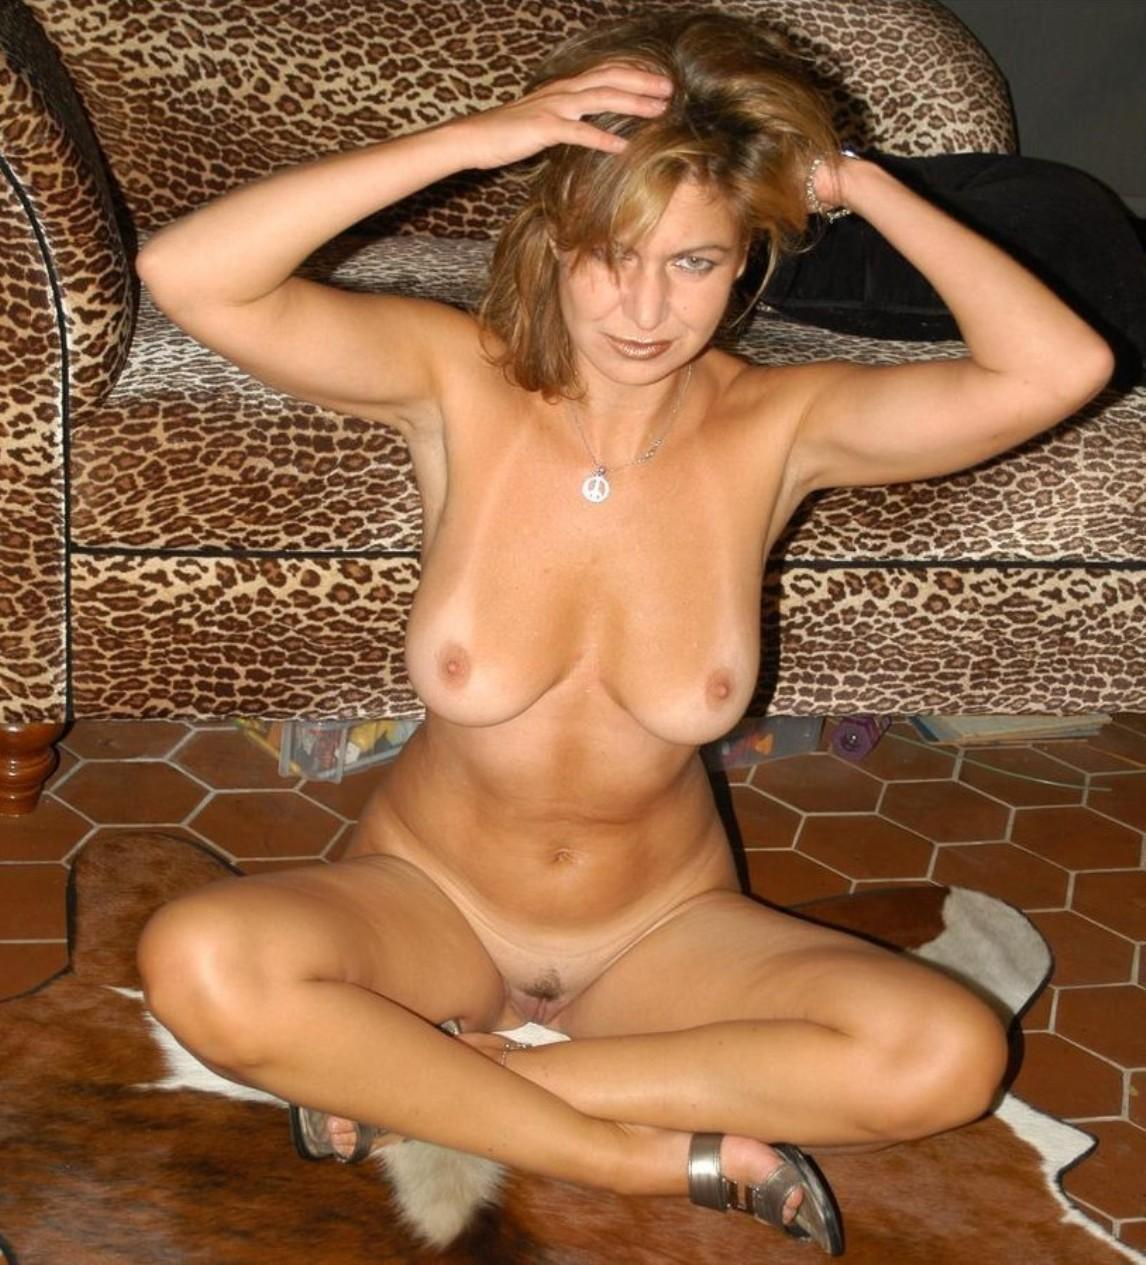 Mature babe unveiling large tits and nice pussy. Wife enjoys showing off her marvelous booty and big tits